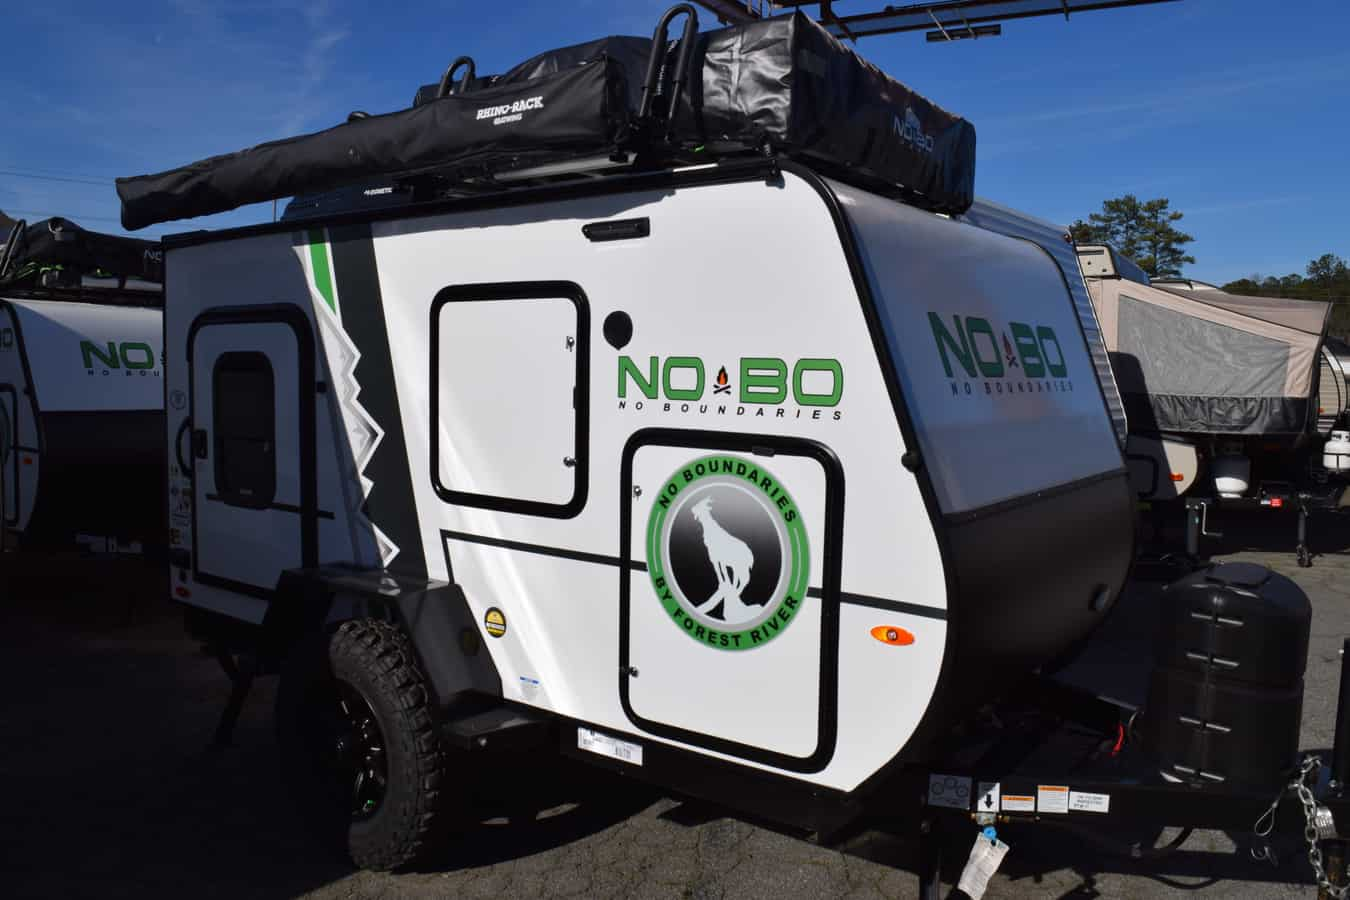 NEW 2019 Forest River NO BOUNDARIES (NOBO) 10.6 - Three Way Campers